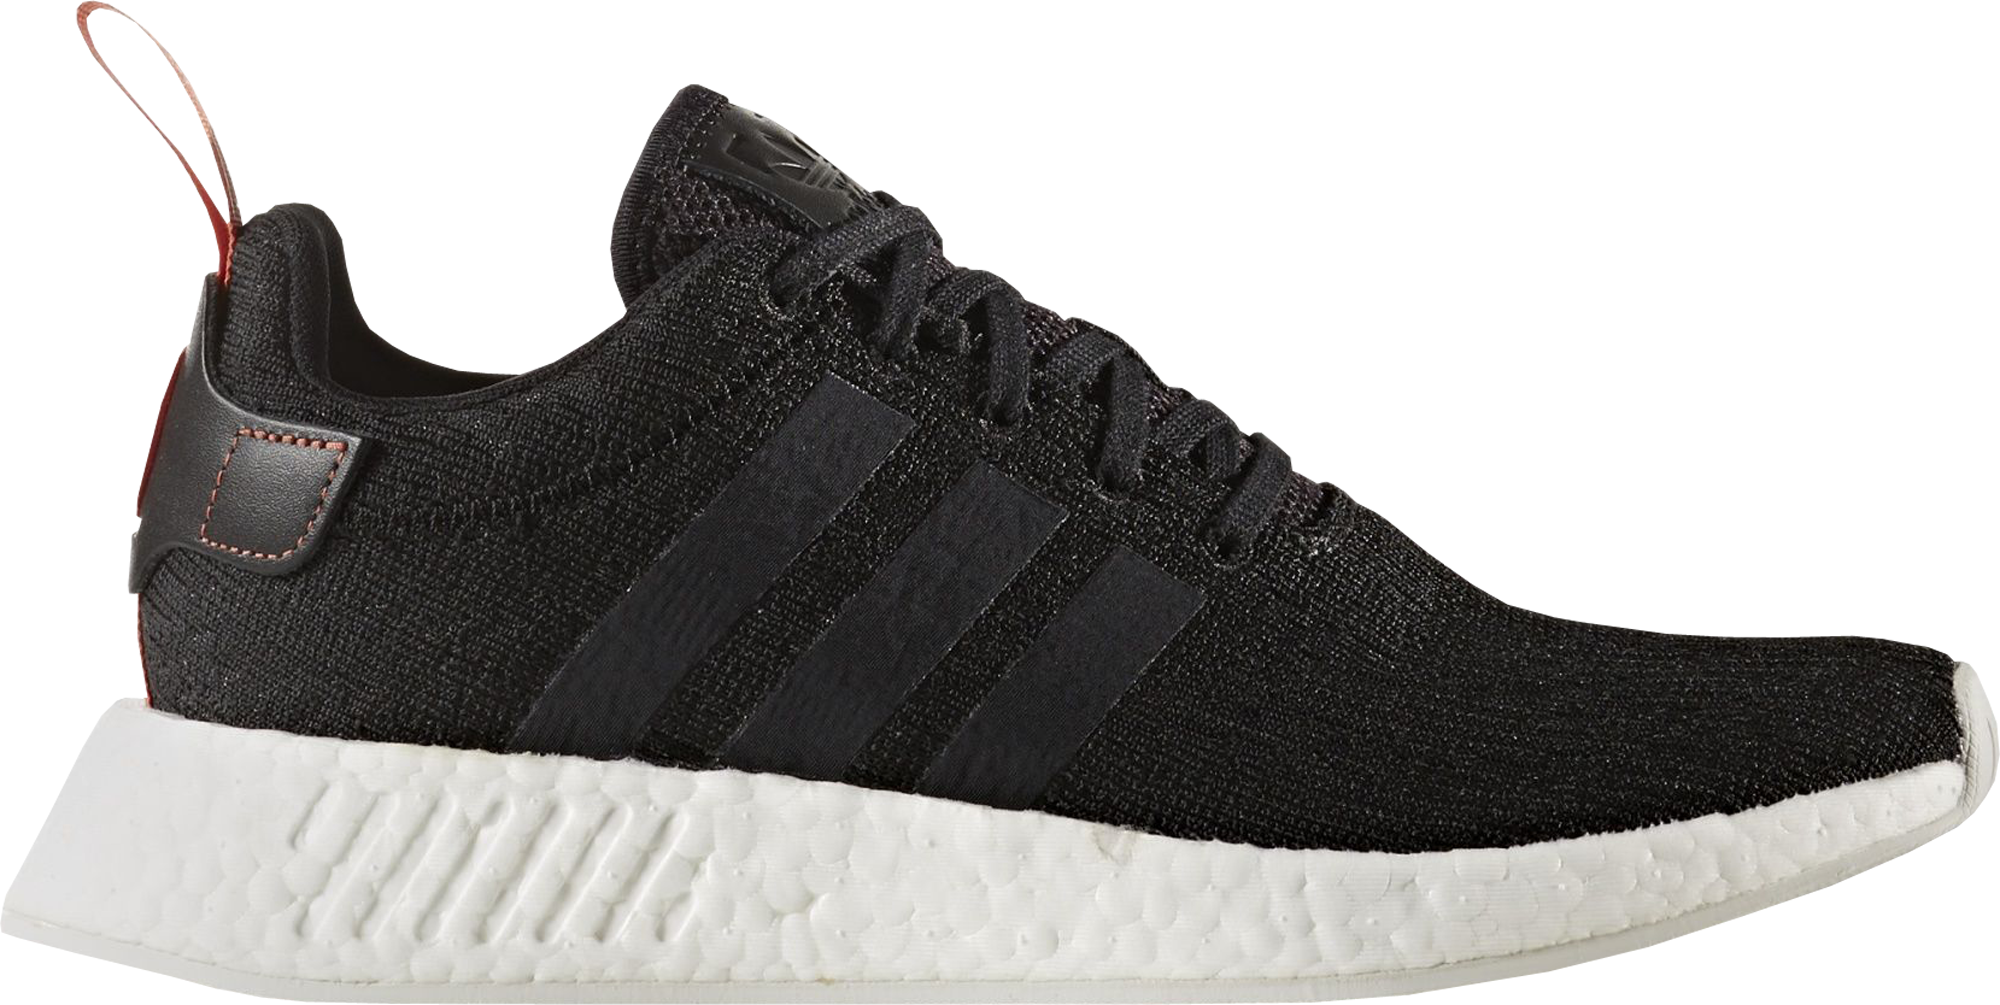 Easy Shopping Cheap Adidas Canada NMD R1 Camo Grey Black Mens